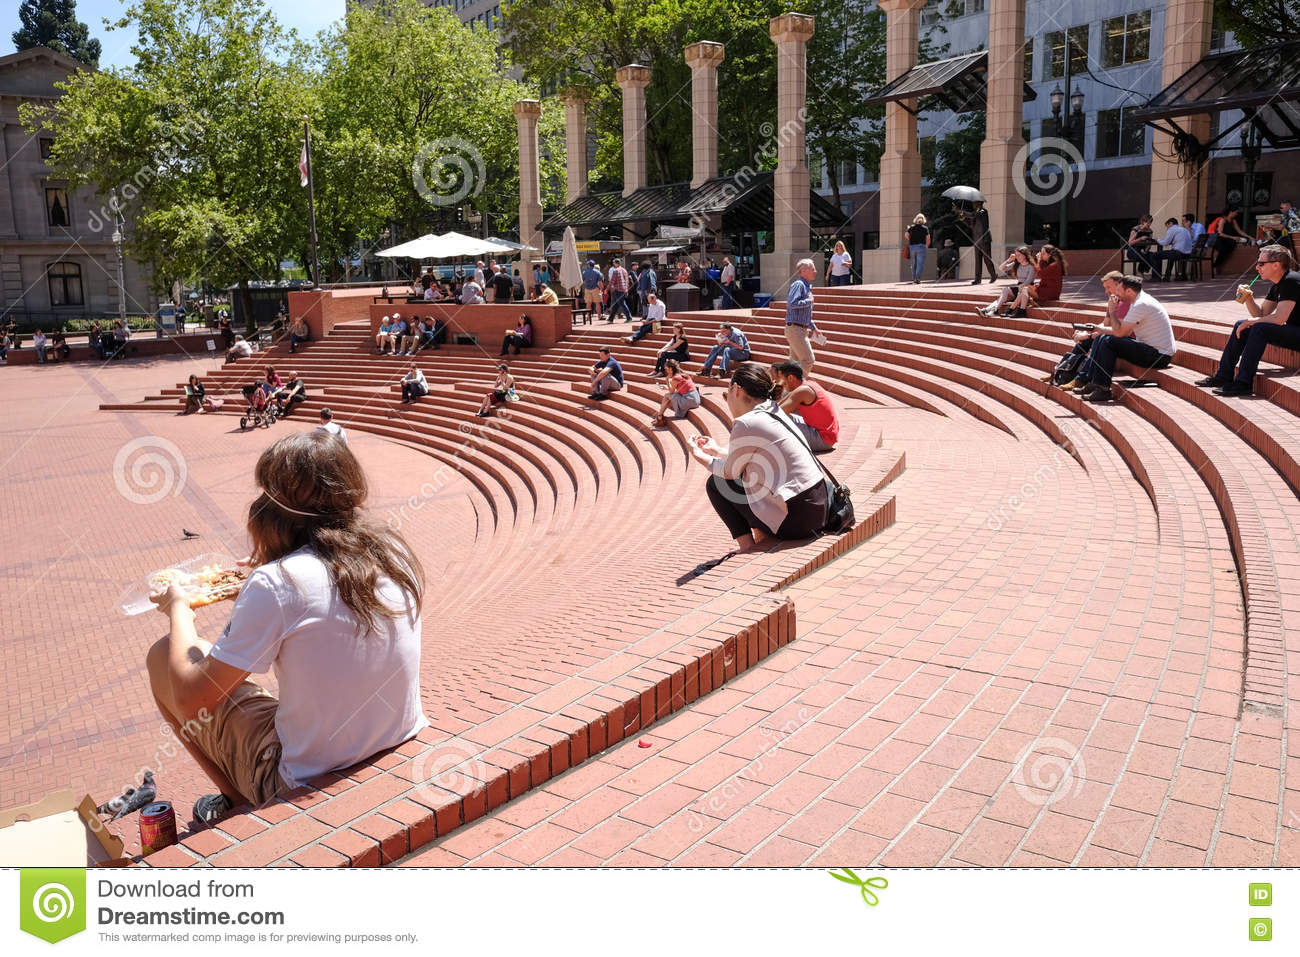 Pioneer Square on a sunny spring day